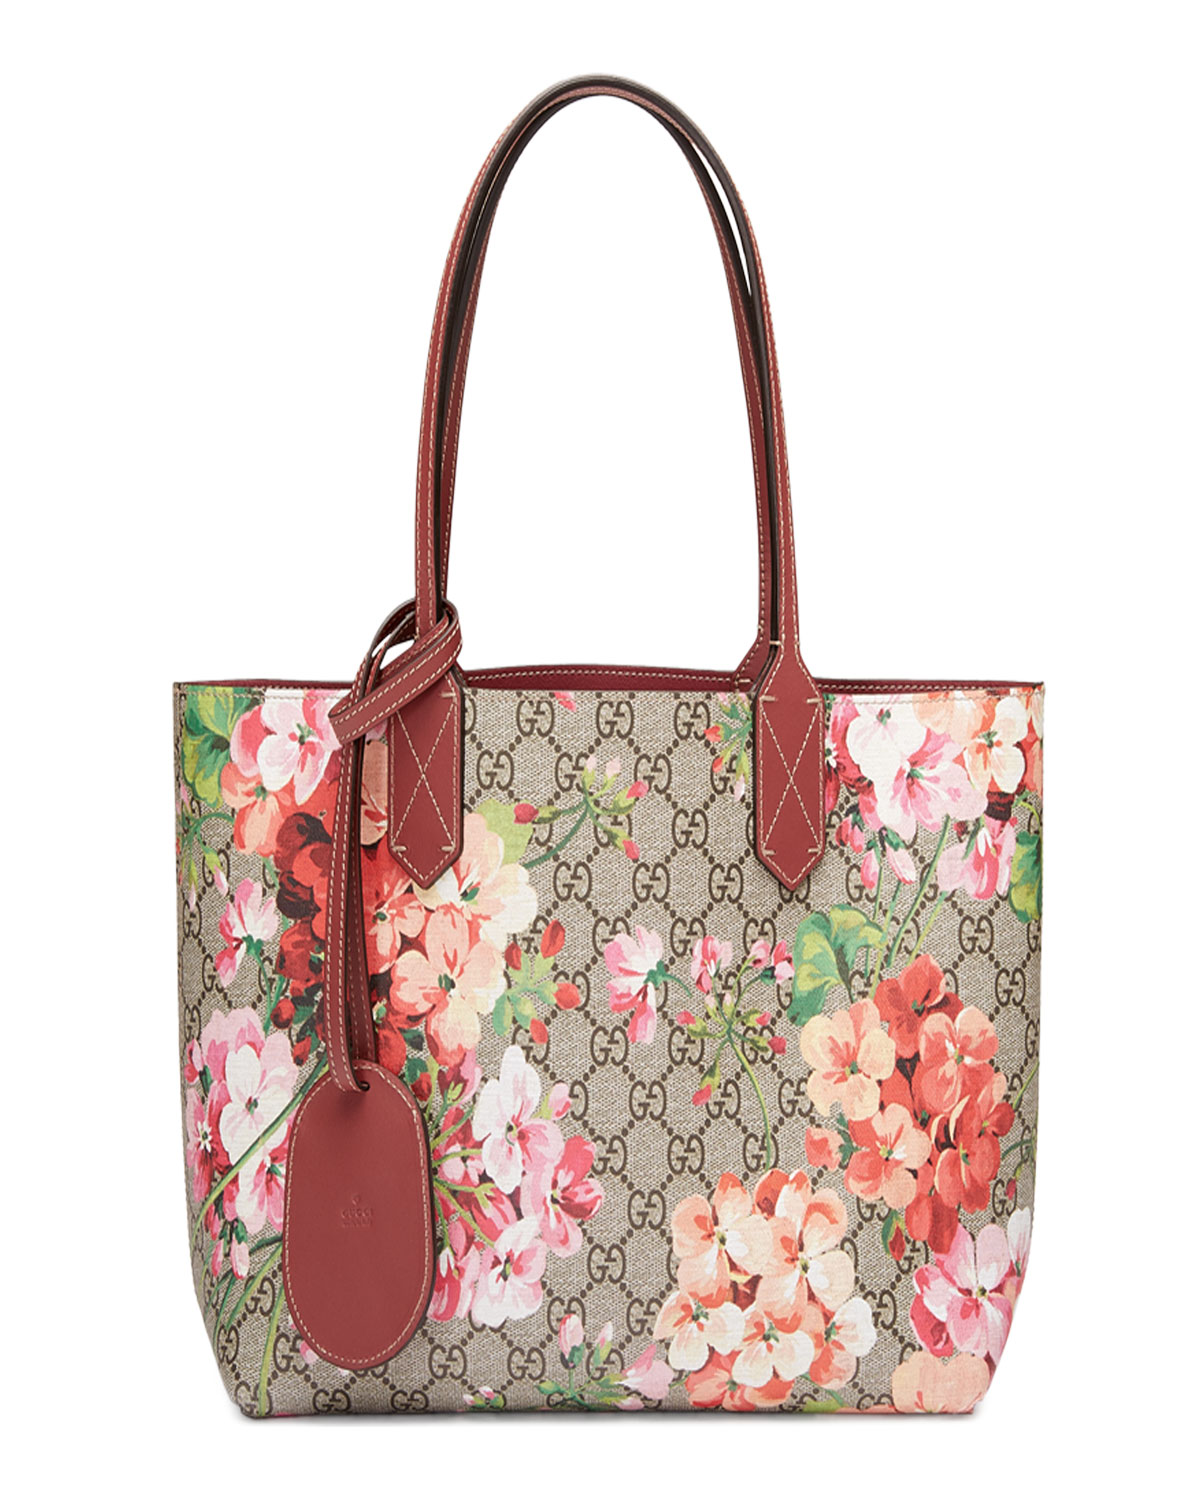 edcbf0e96 Gucci GG Blooms Reversible Small Tote Bag | Neiman Marcus